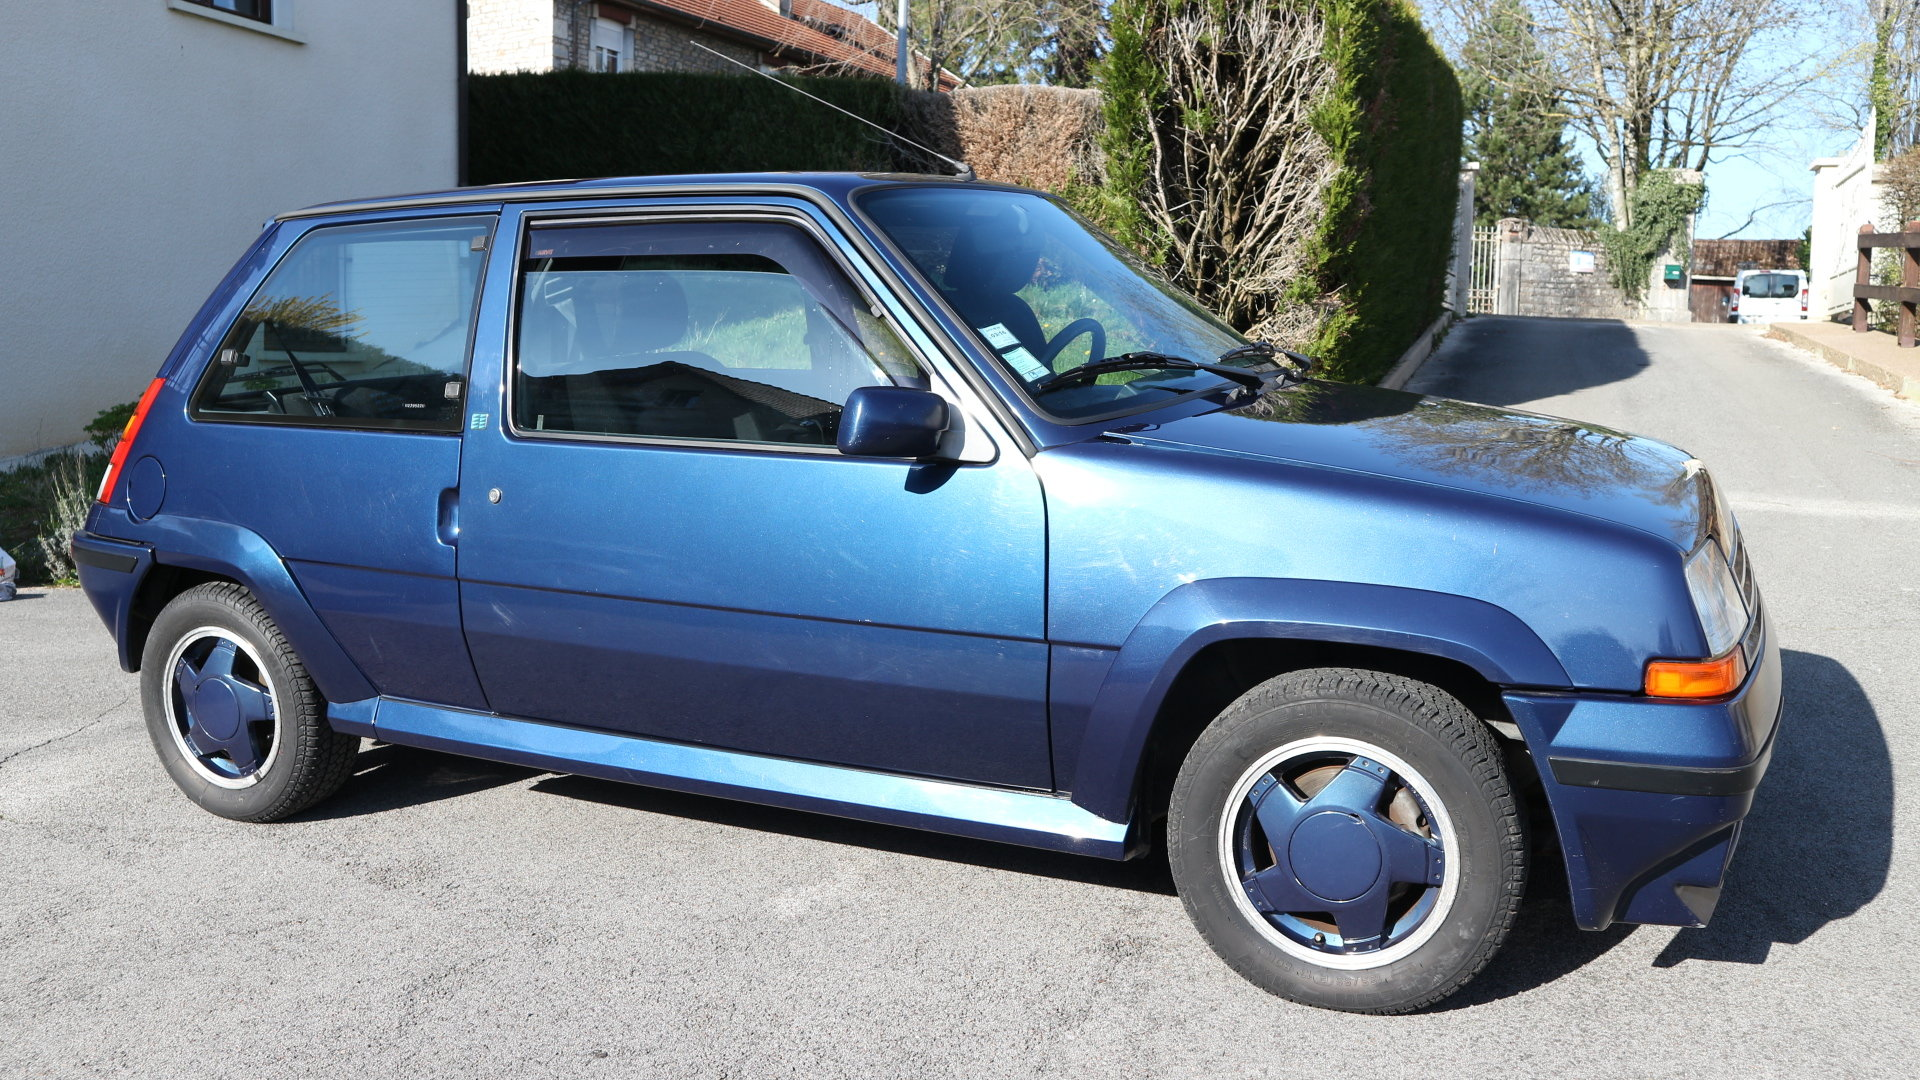 1990 Renault Super 5 GT turbo Alain Oreille For Sale (picture 4 of 6)